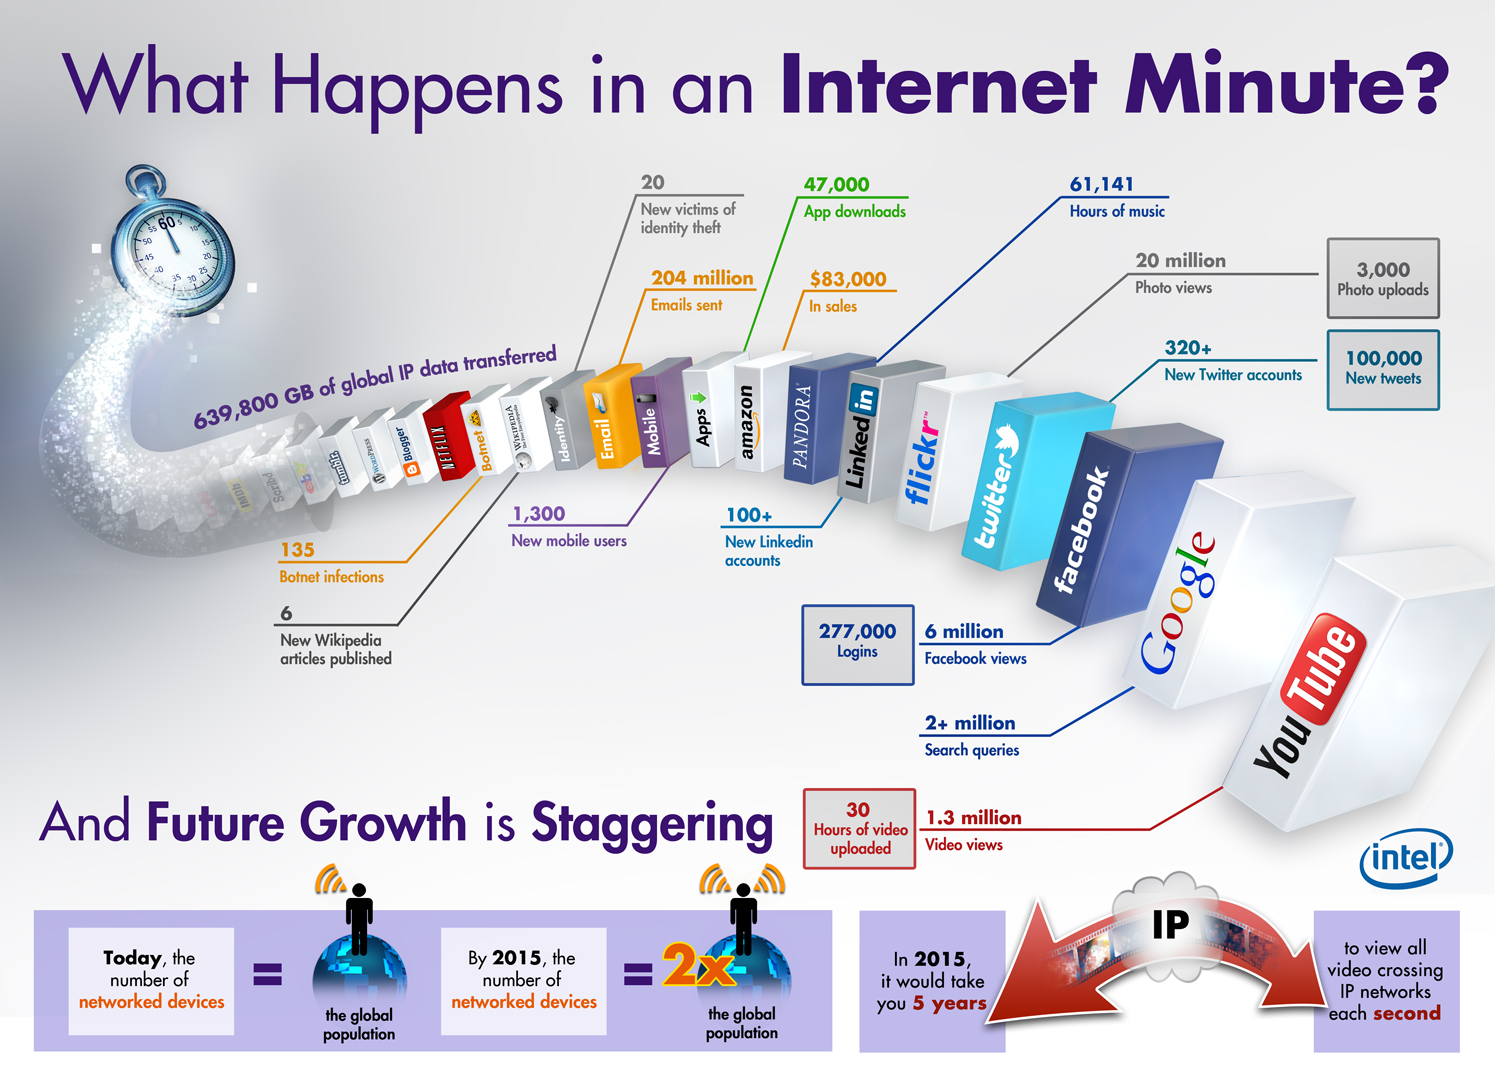 what-happens-in-an-internet-minute-intel-infographic Intel-made infographic reveals what happens in an internet minute Fun